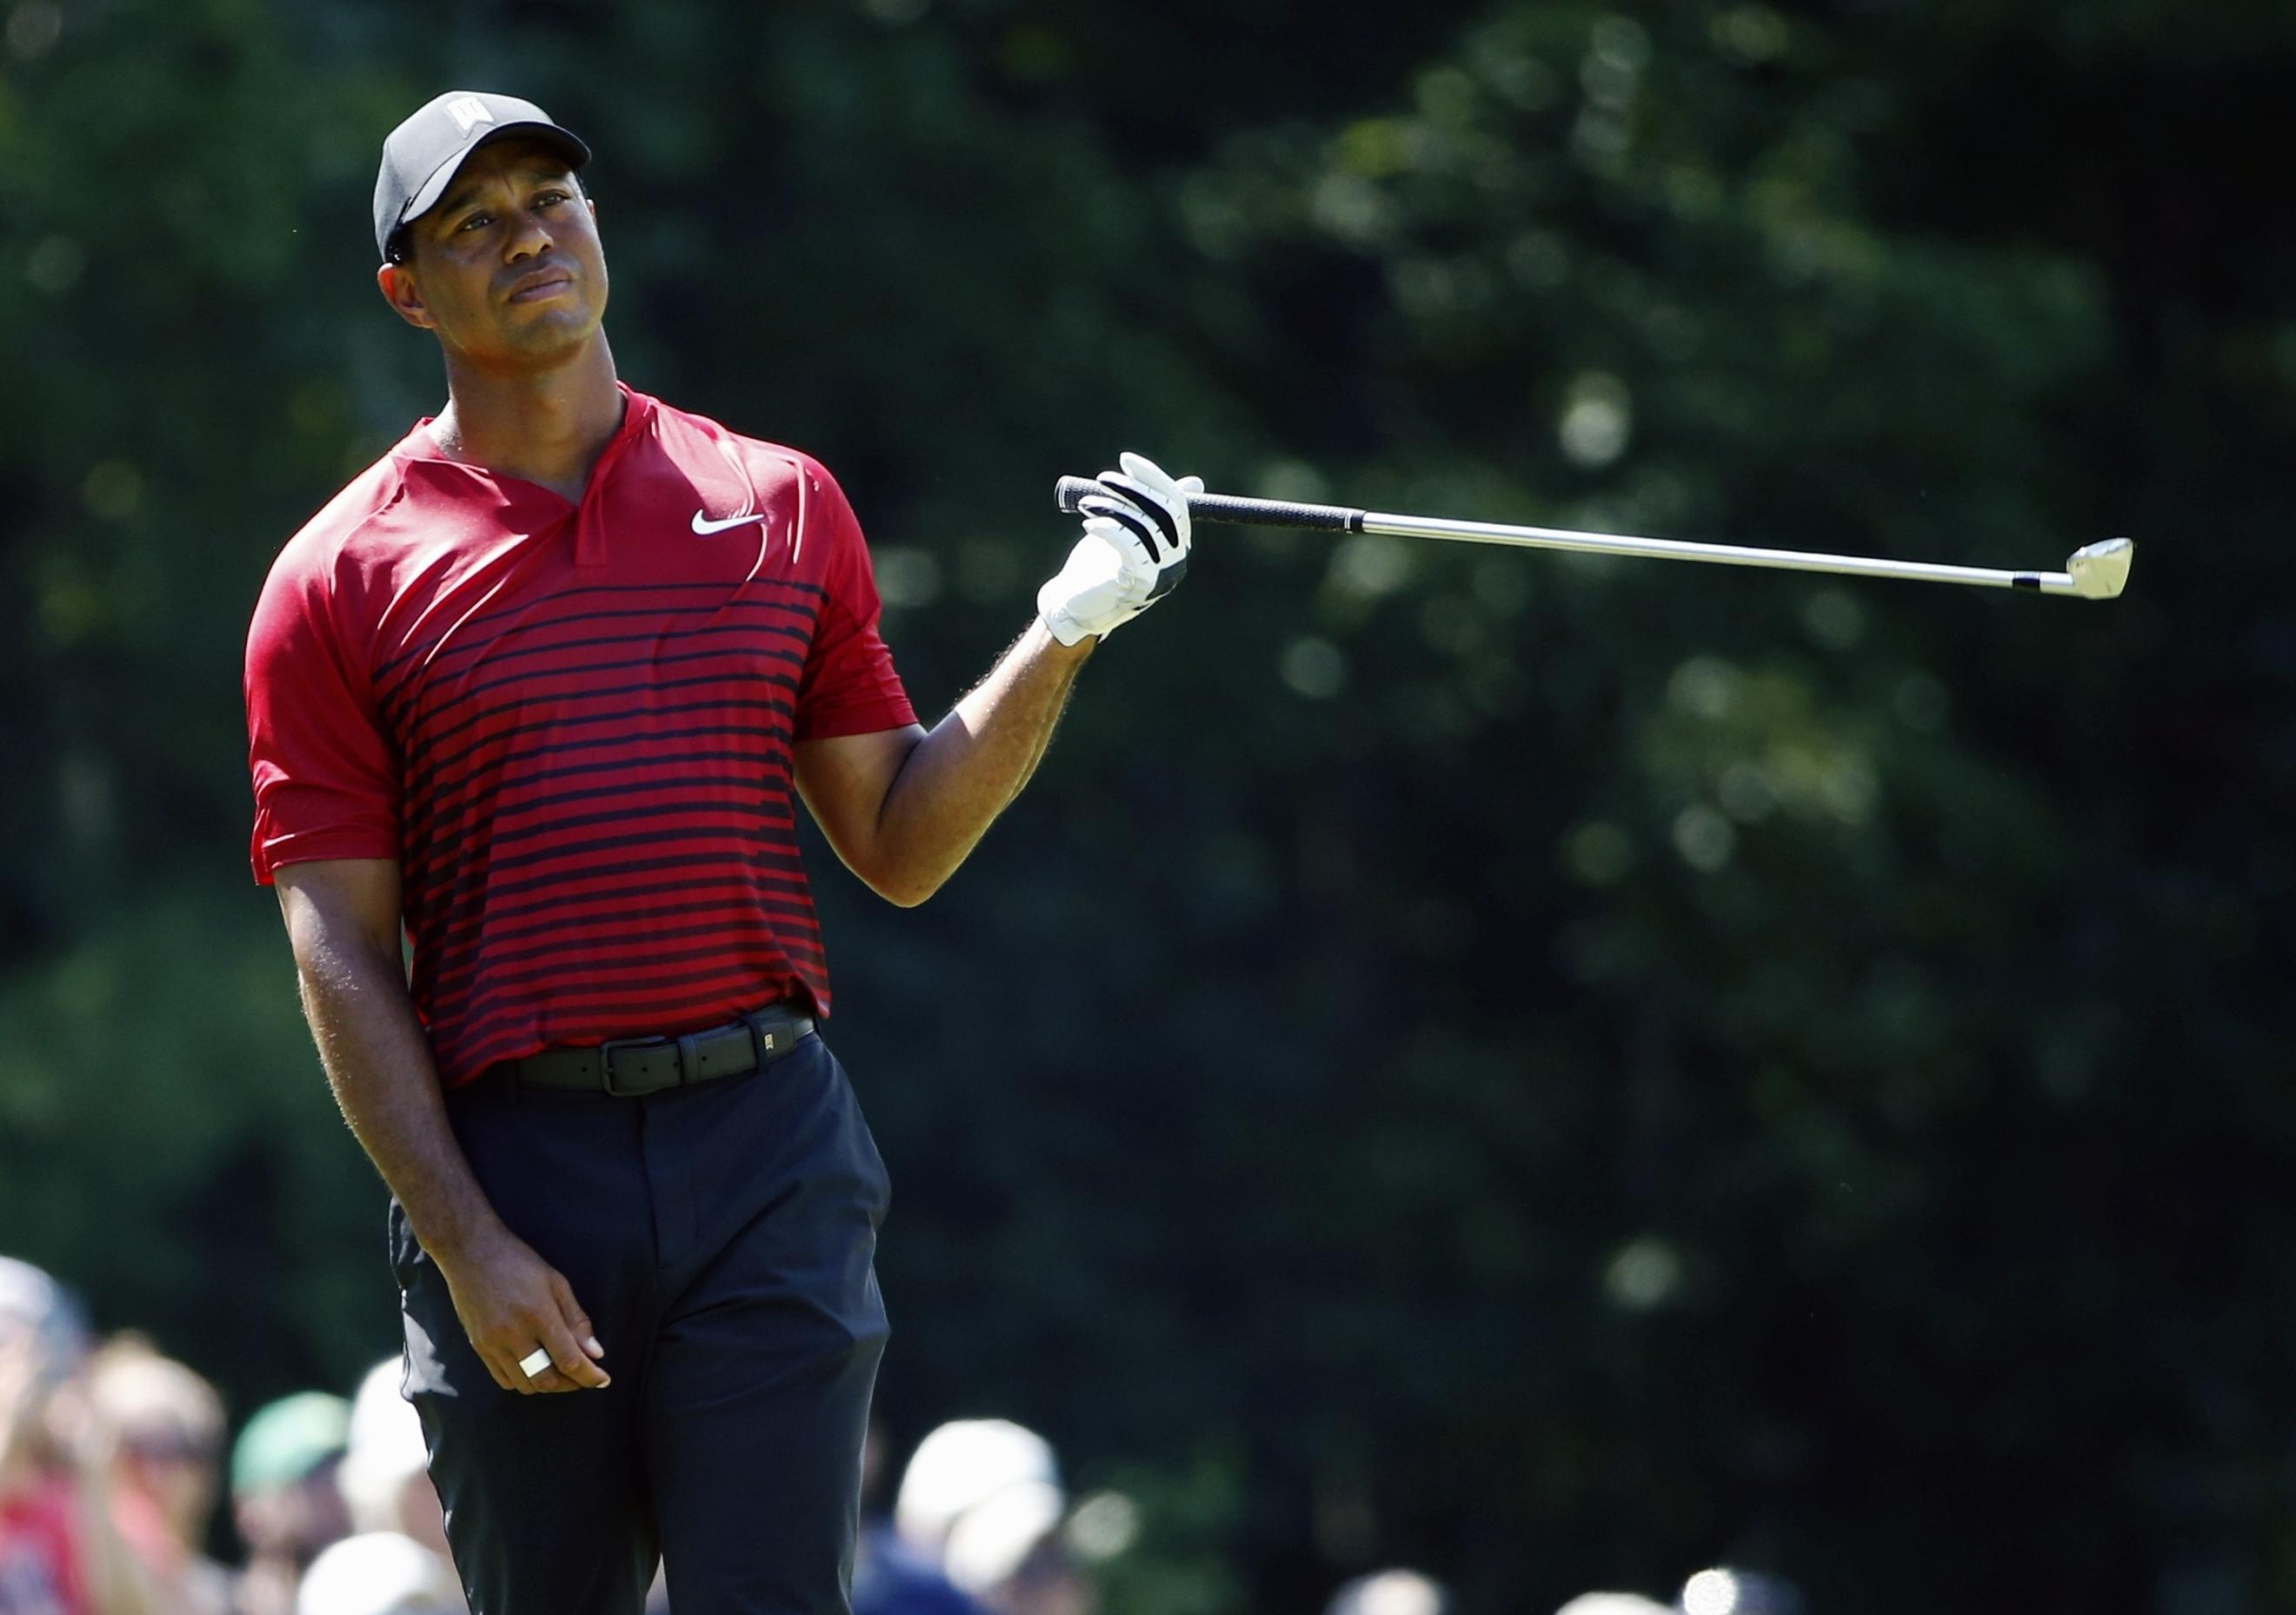 Tiger Woods hit his tee shot into the water on the 16th